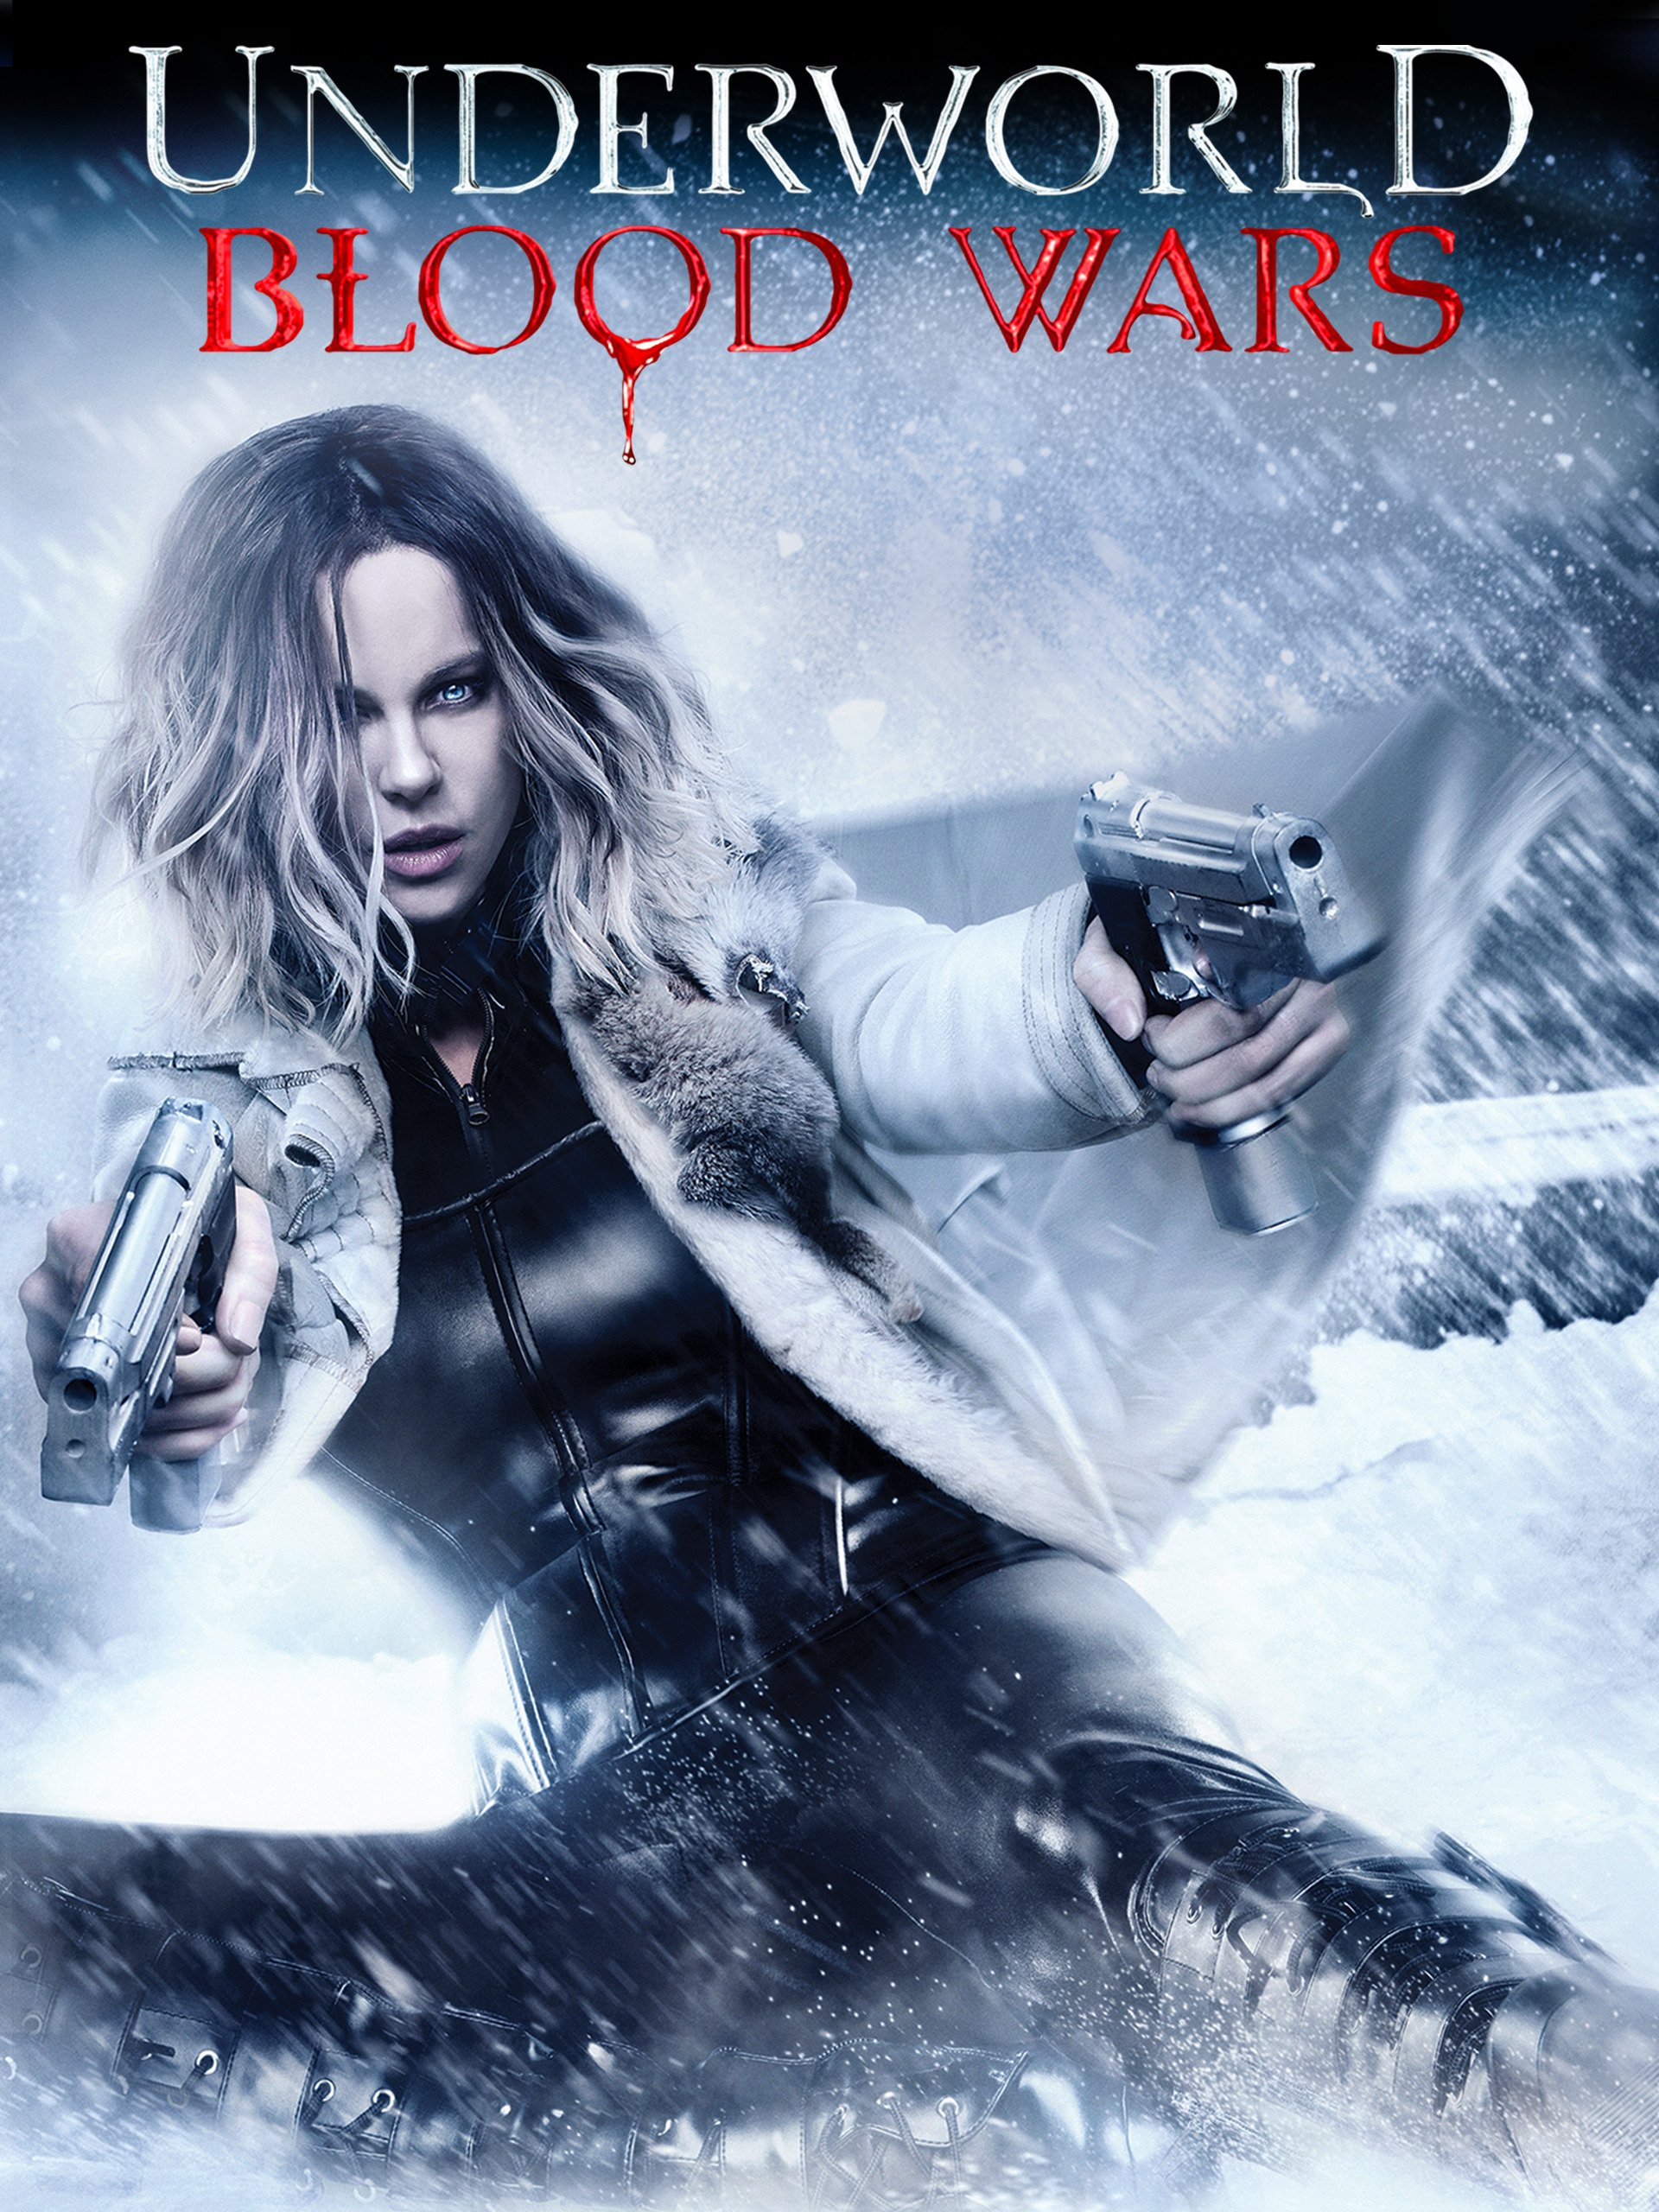 Underworld: Blood Wars by